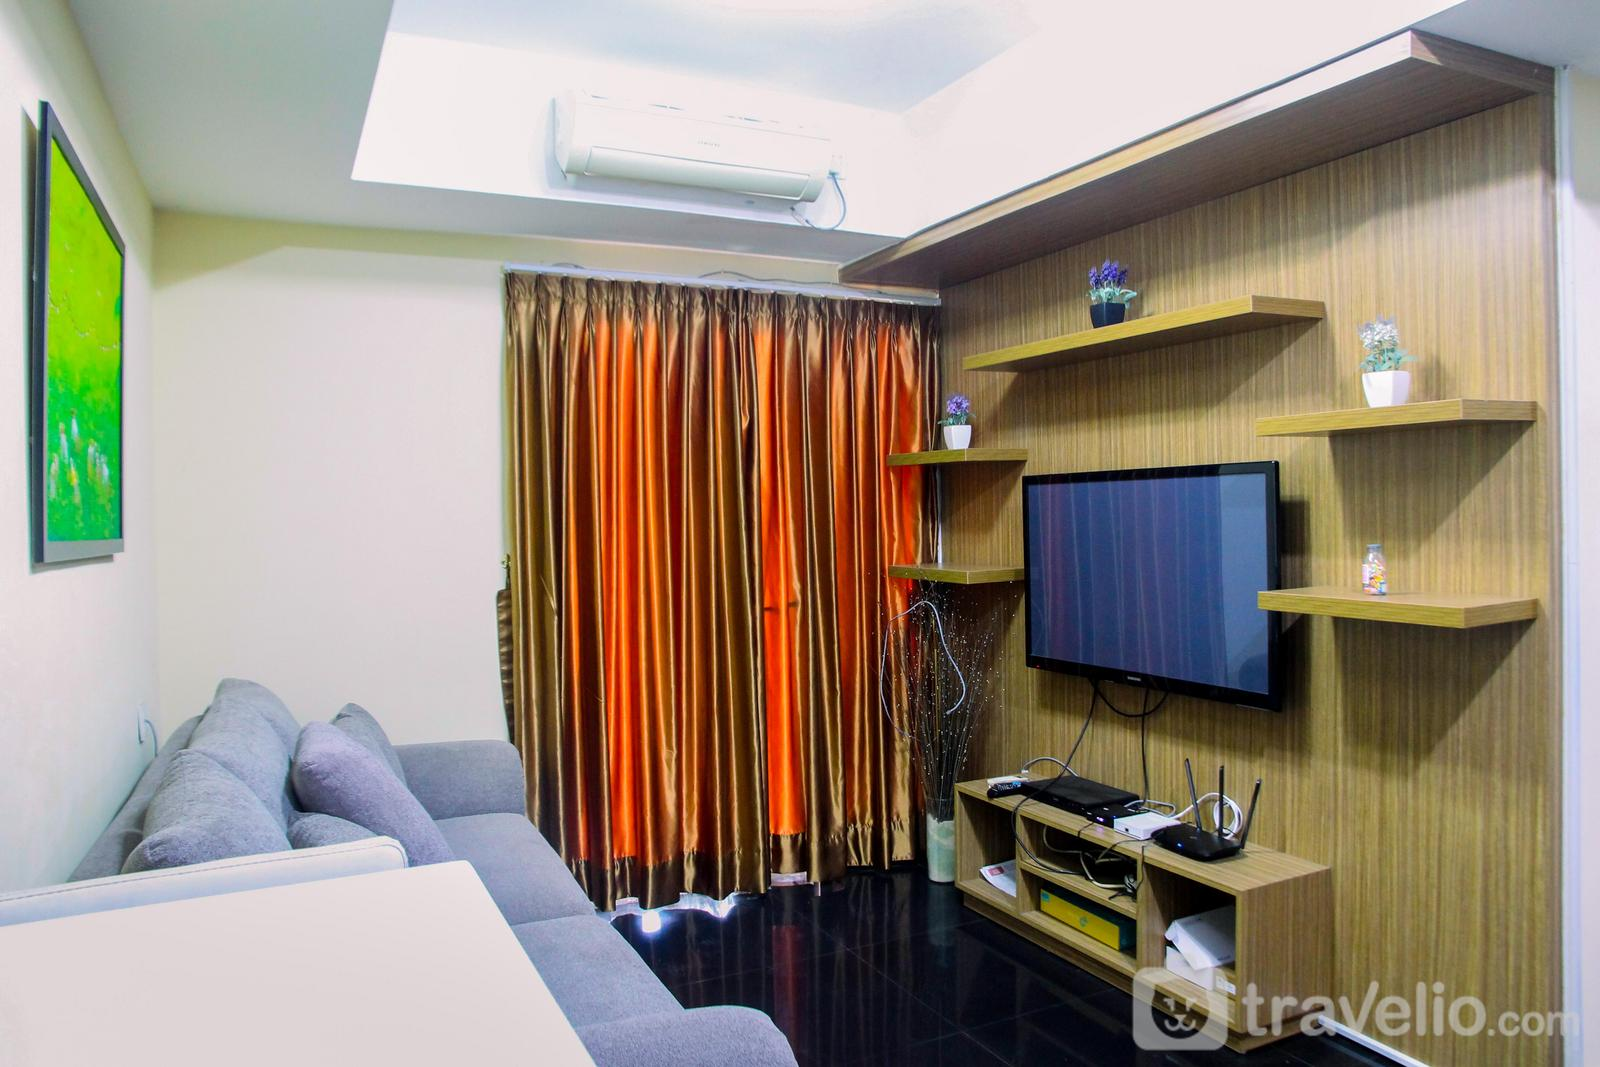 The Wave Kuningan - Modern 2BR at The Wave Epicentrum Apartment near Kuningan By Travelio